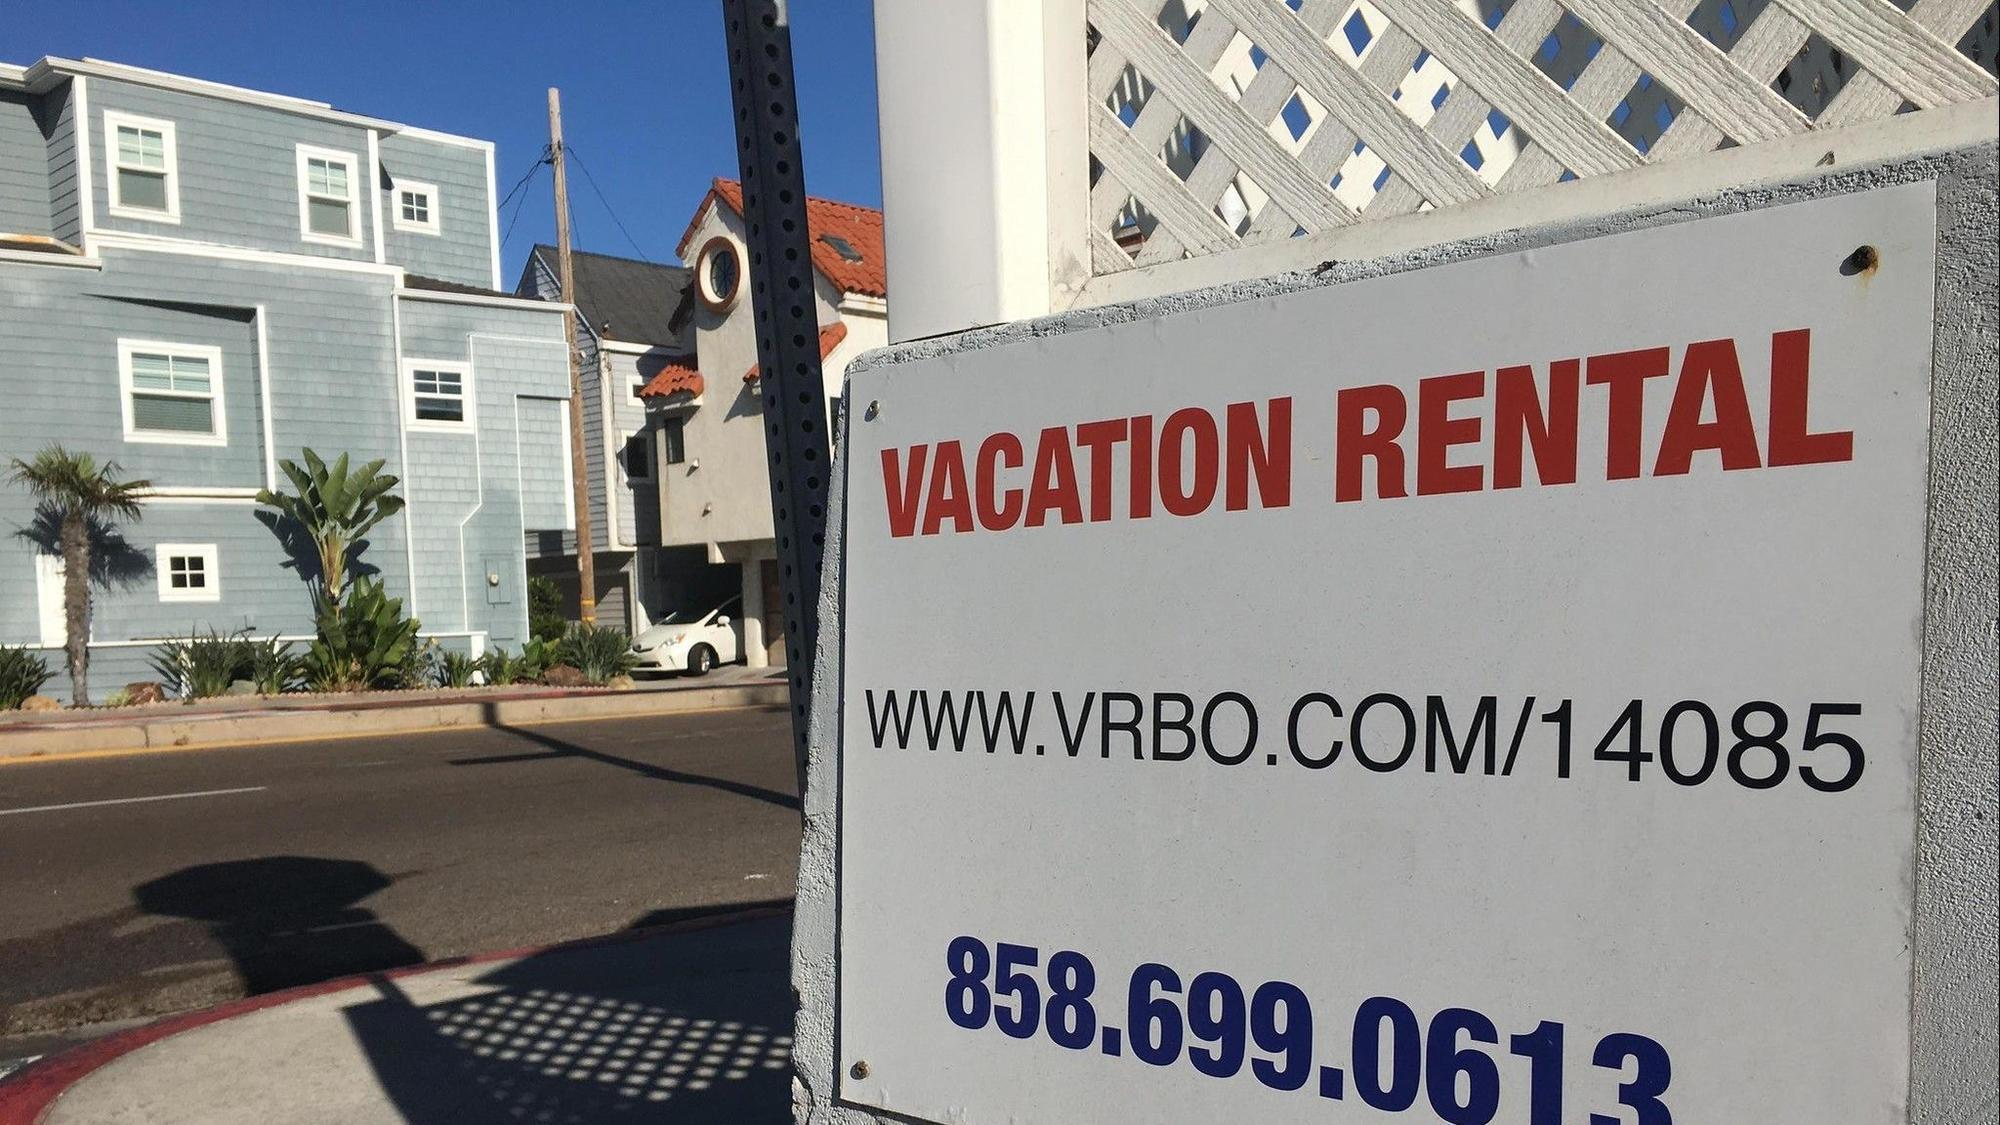 Faulconers Plan For Regulating Airbnb Style Rentals Gets Mixed Reactions